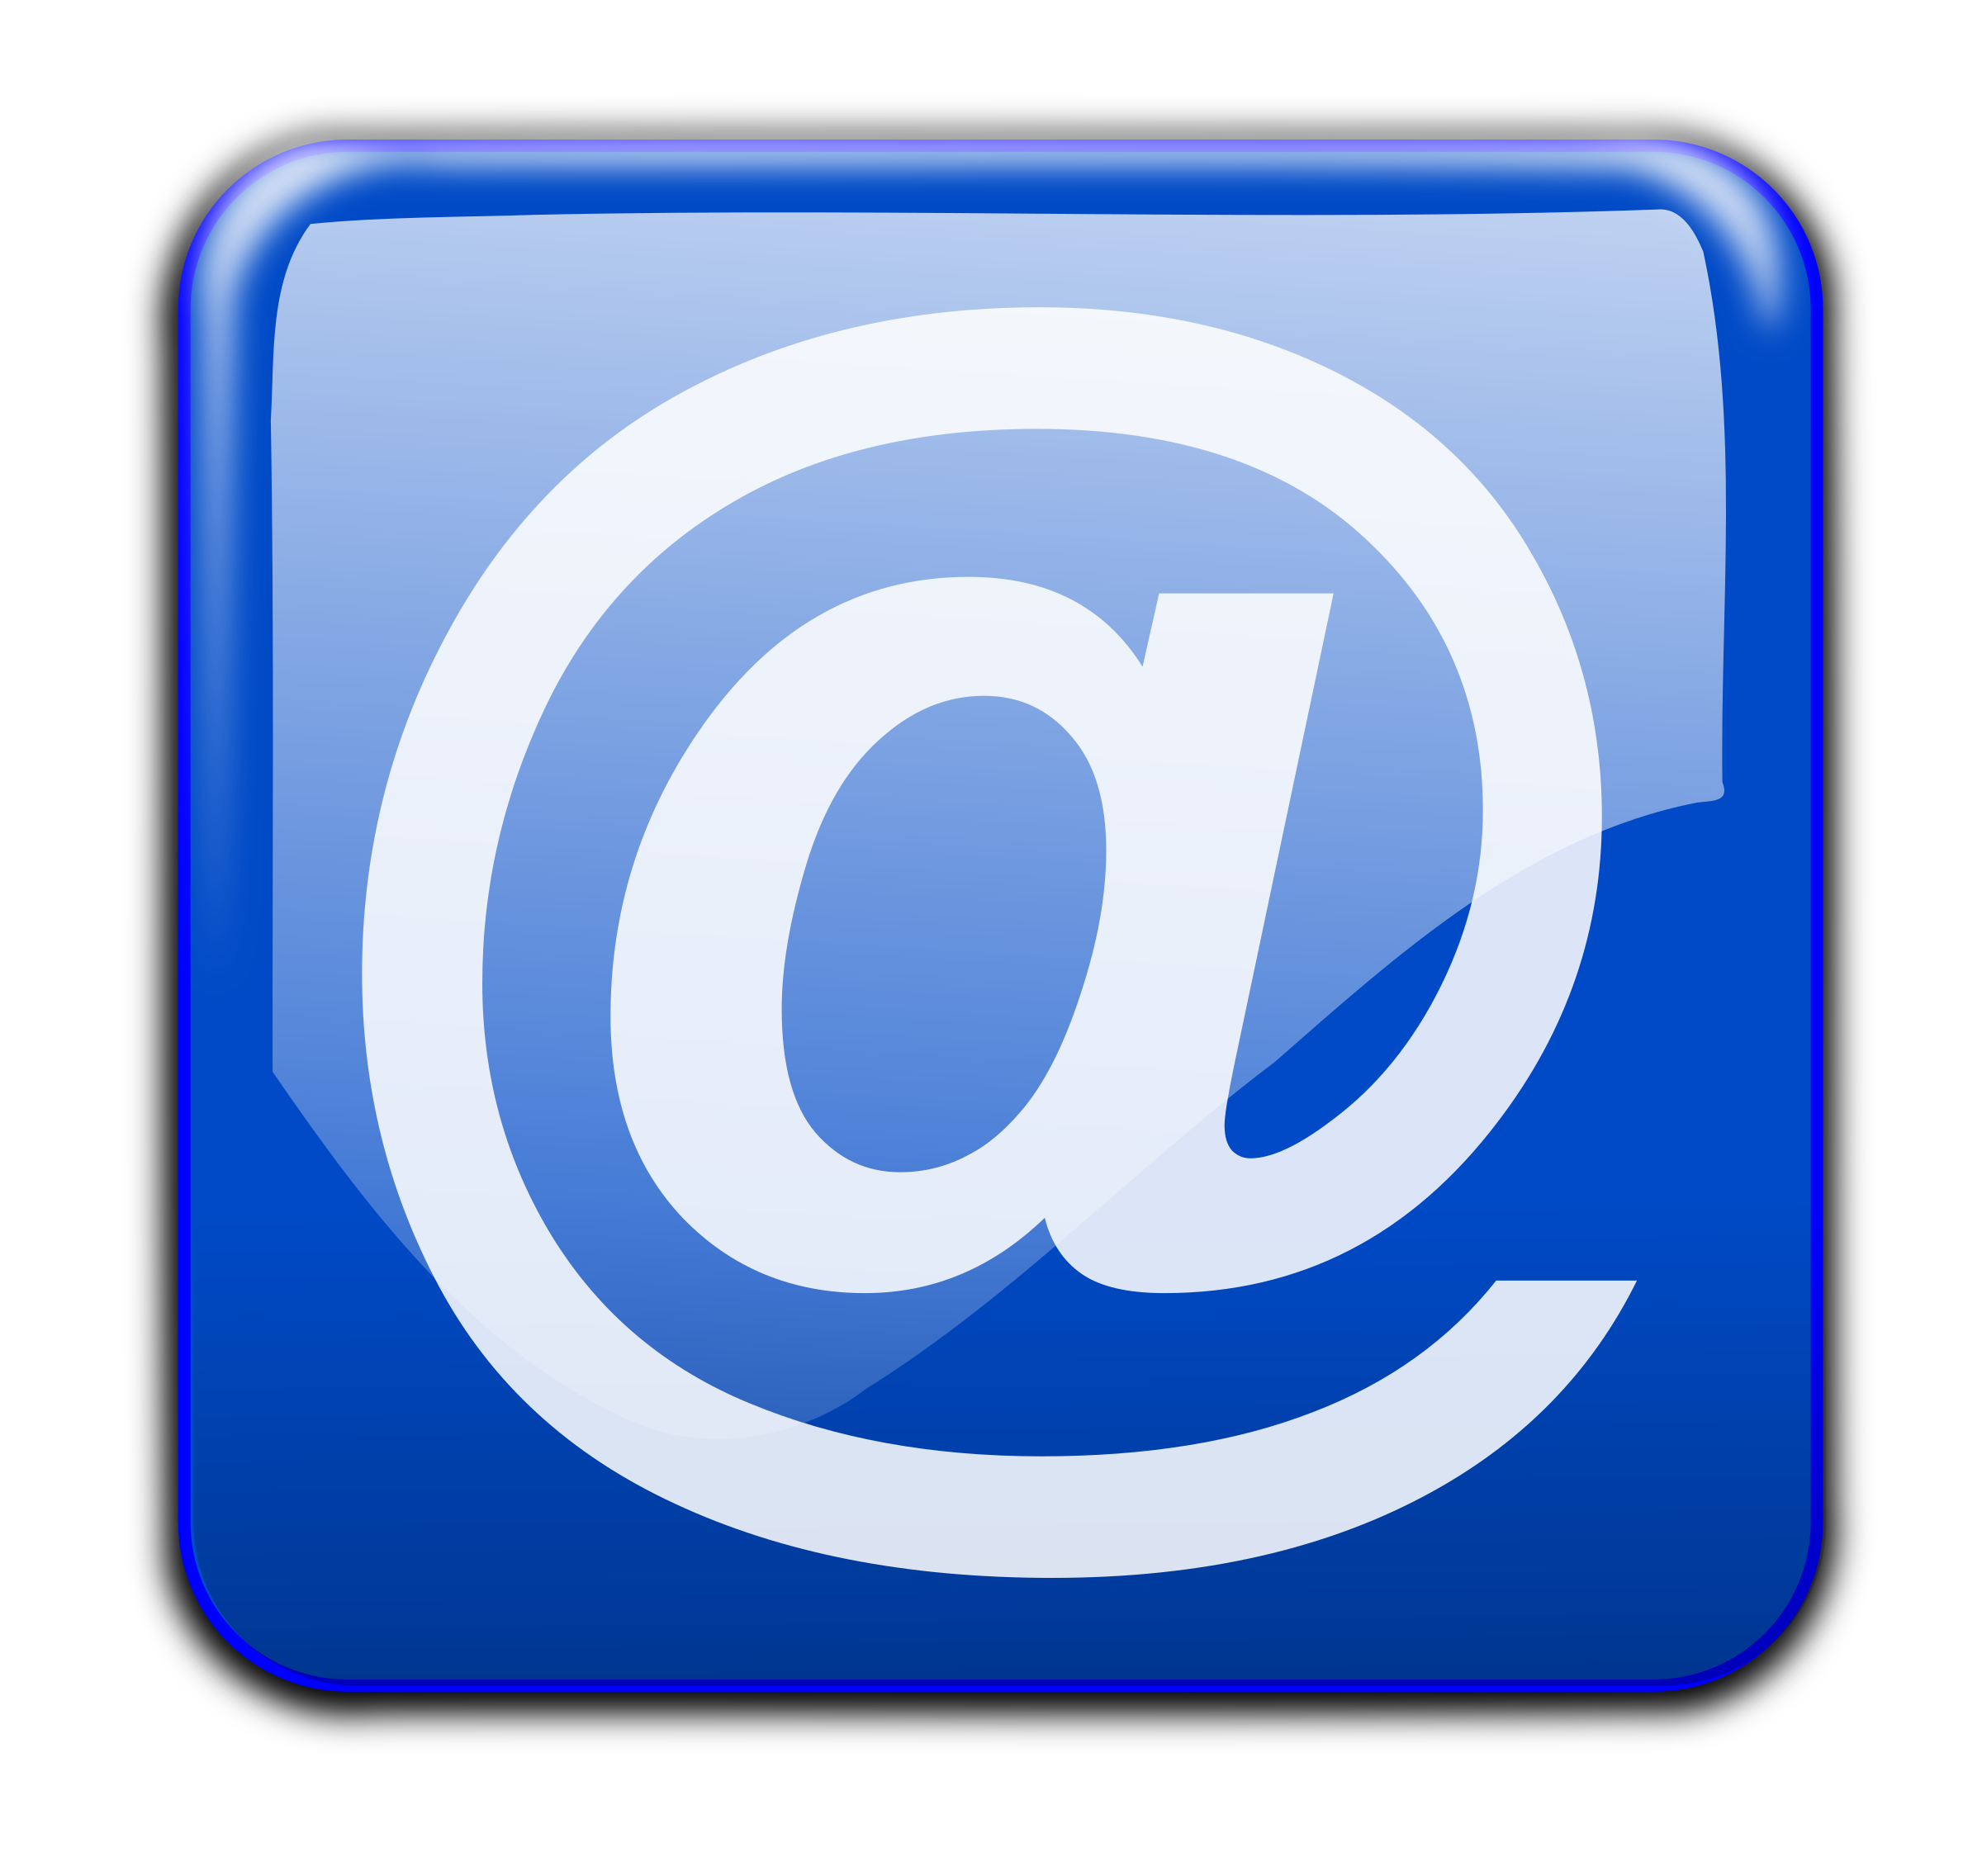 Website clipart website button. Free email animations animated